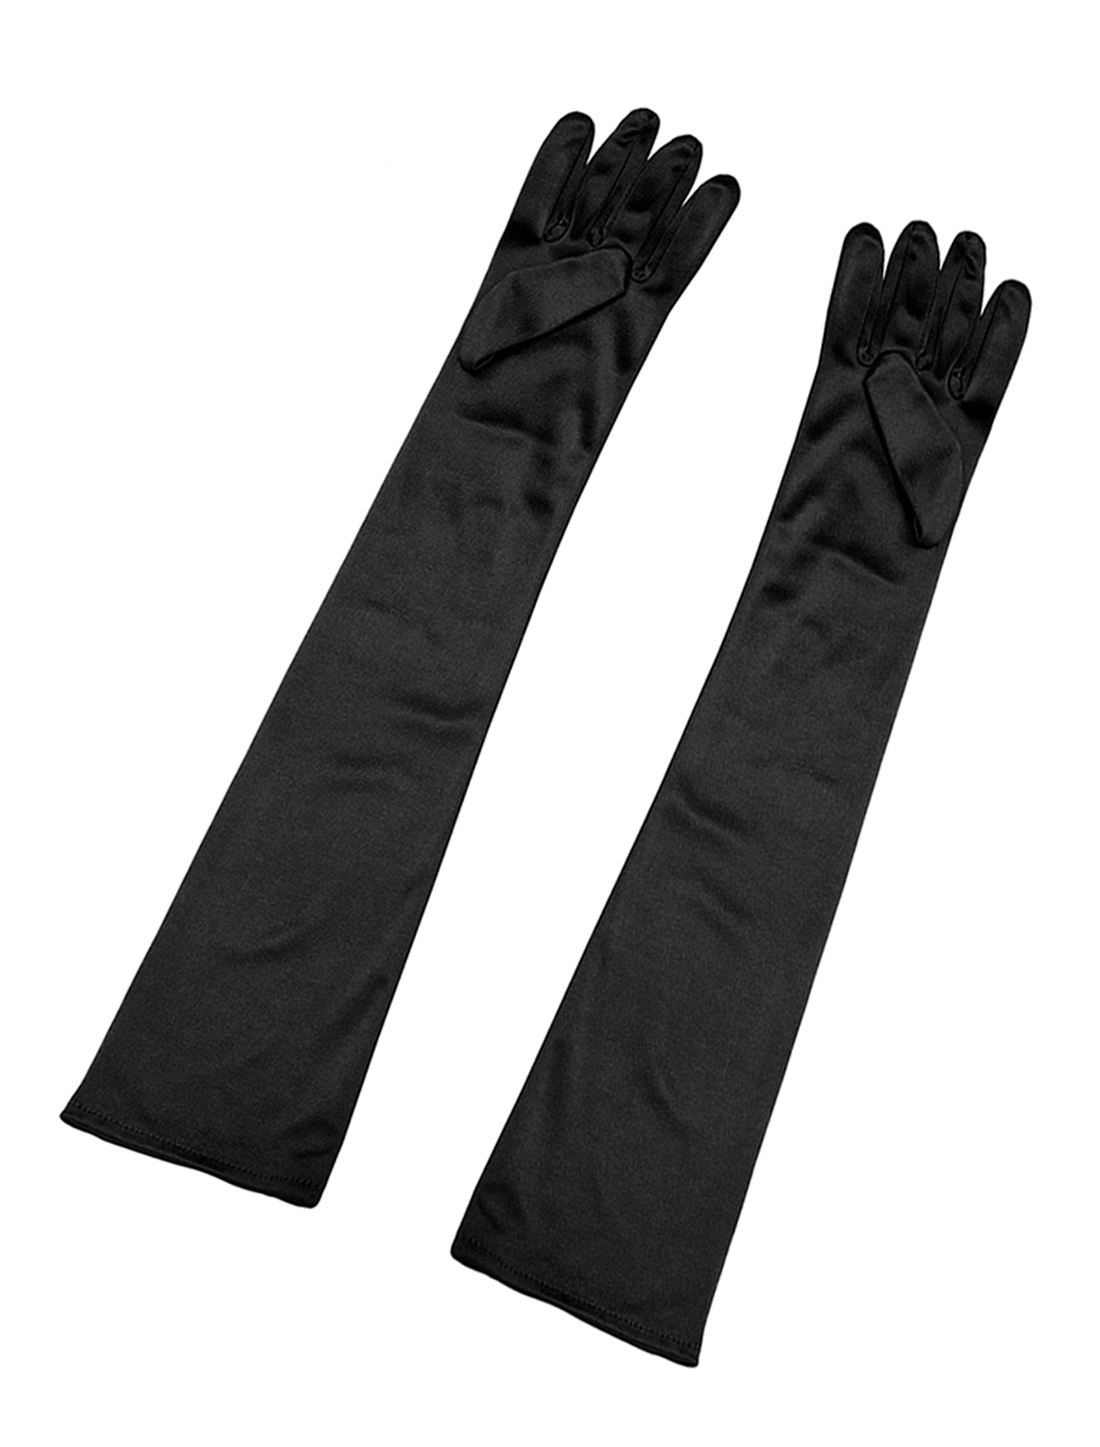 Women Shiny Stretchy Opera Length Full Finger Gloves Pair Black